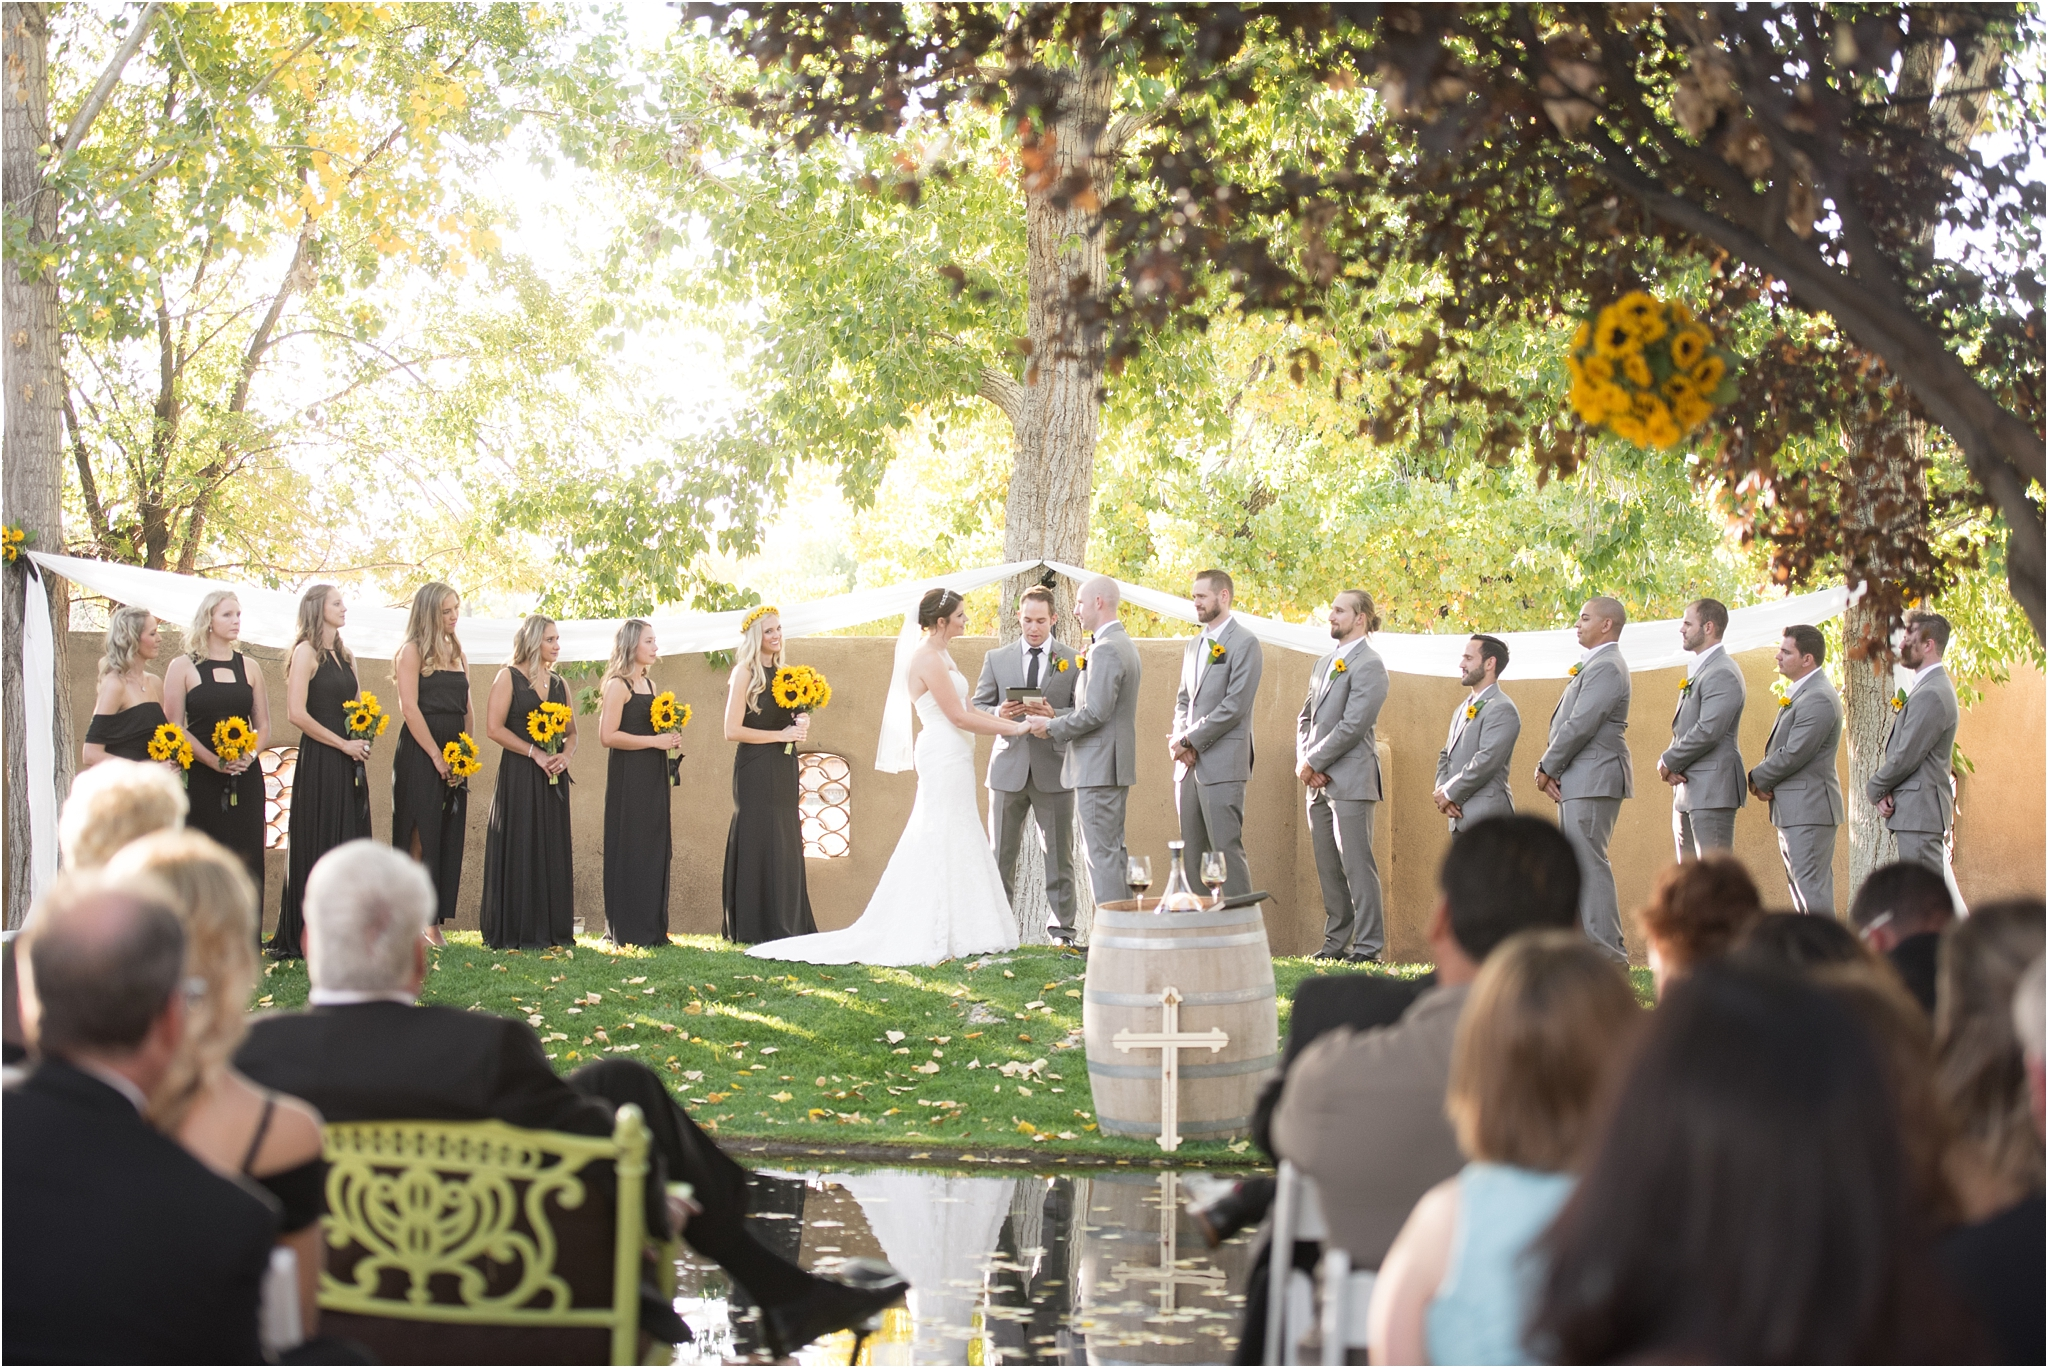 kayla kitts photography - albuquerque wedding photographer - orange september - cjohnson makeup_0036.jpg